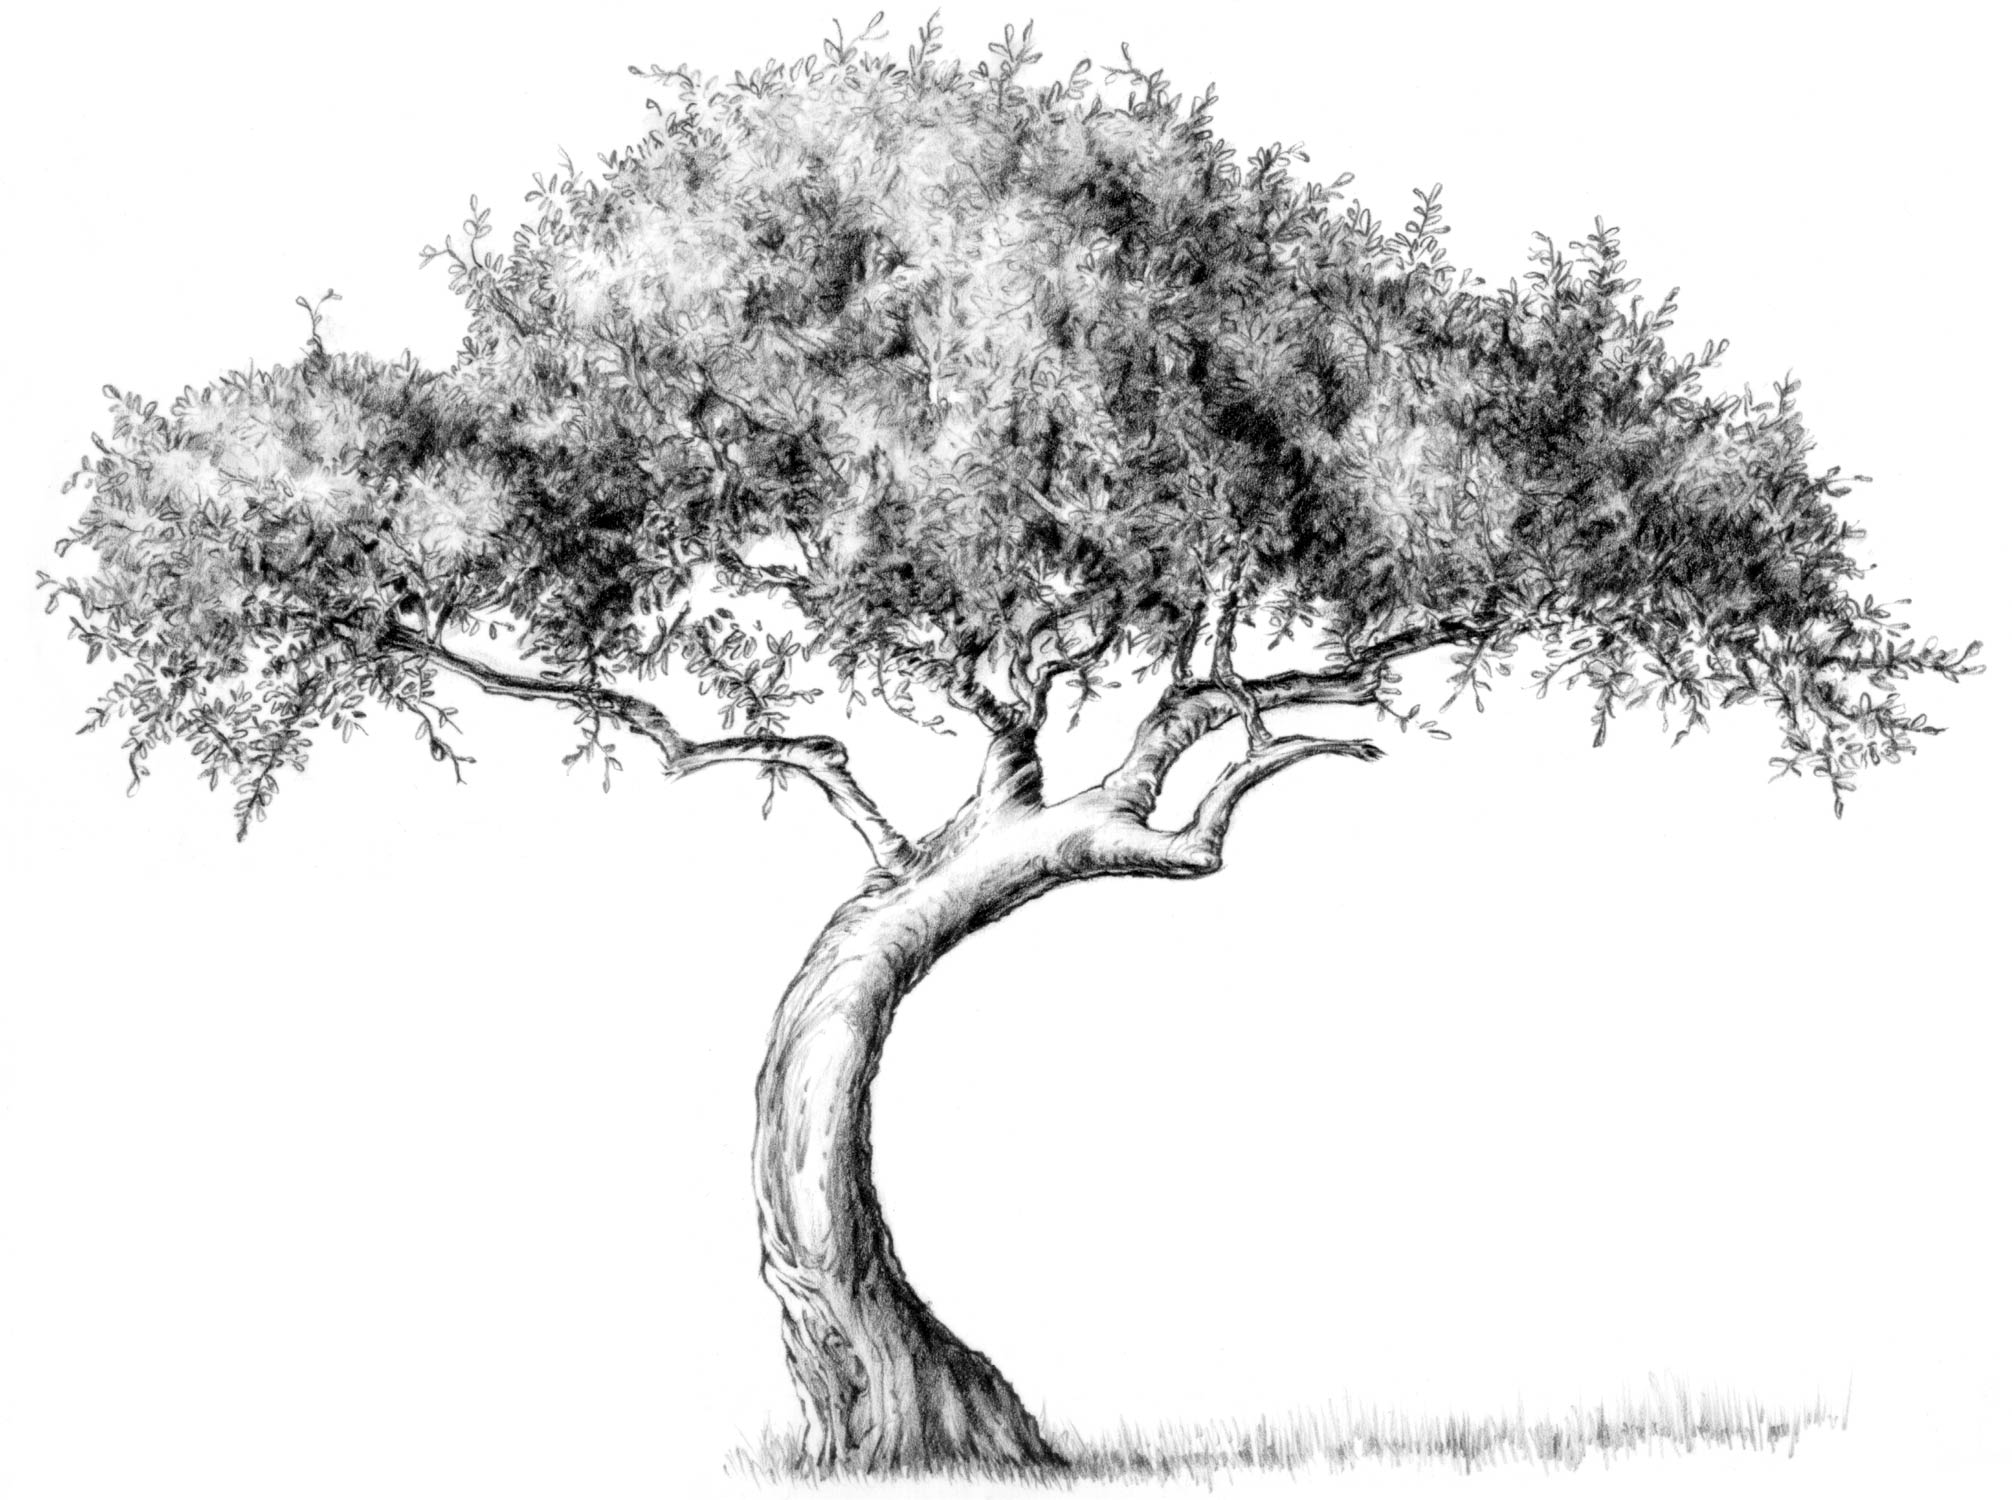 nattree04 - Tree Drawings